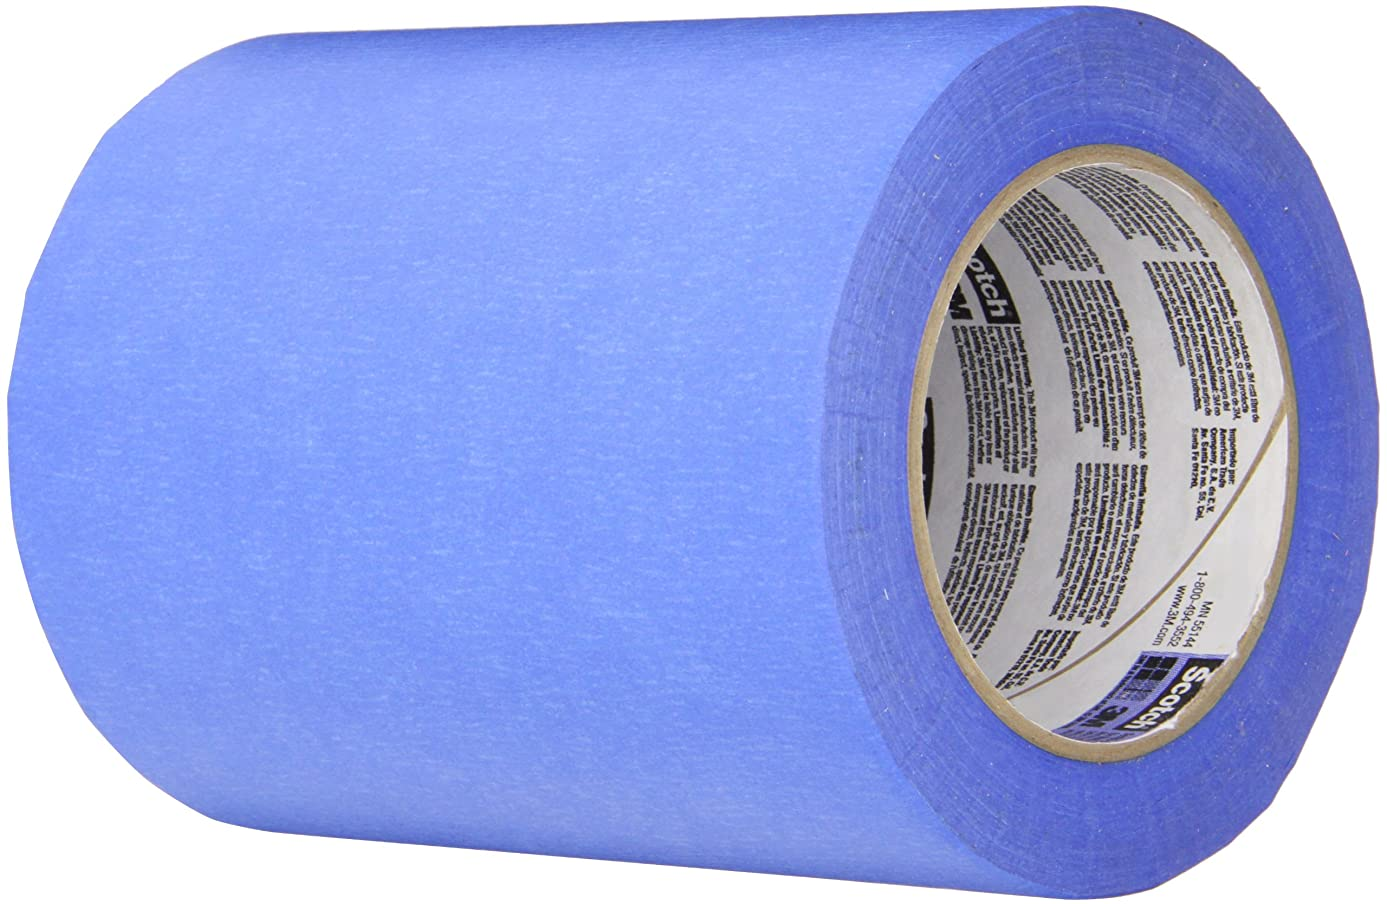 3M 2090?Long-Mask Masking Tape – 2.5 in. x 180 ft. Masking Tape Roll for Medium Adhesion. Painting Wall Preparation